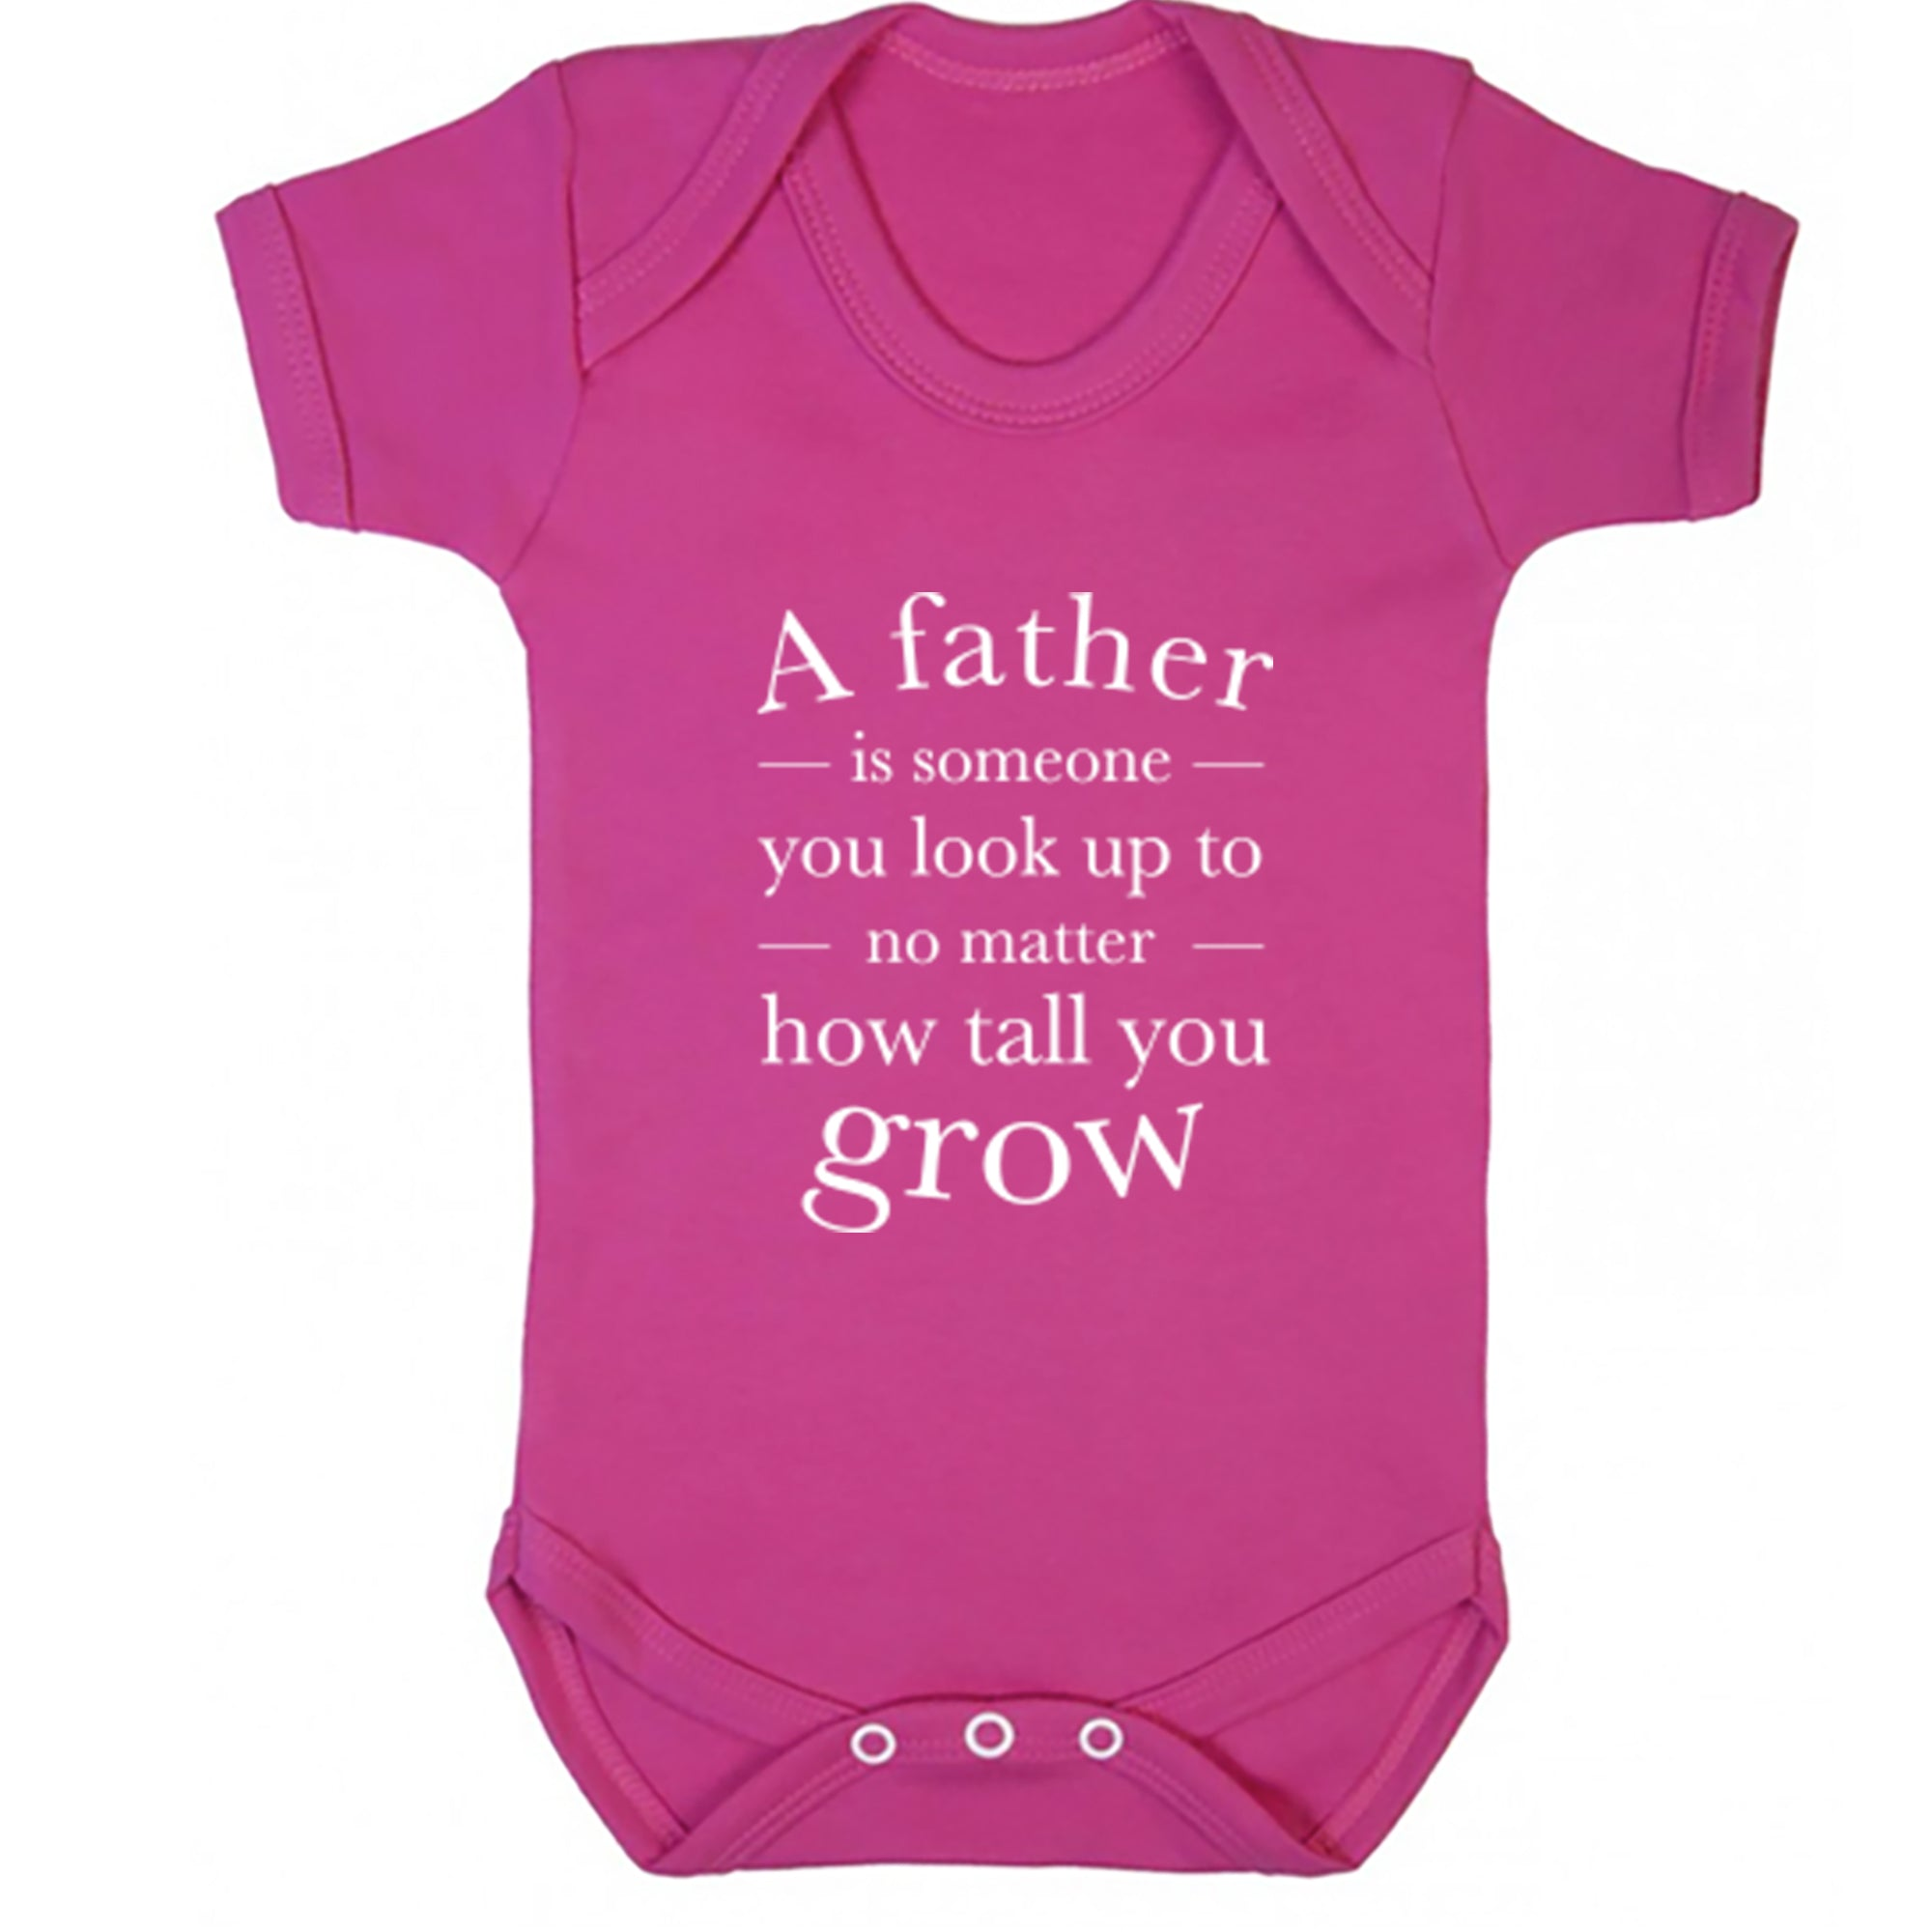 A Father Is Someone You look Up To No Matter How Tall You Grow Baby Vest S0719